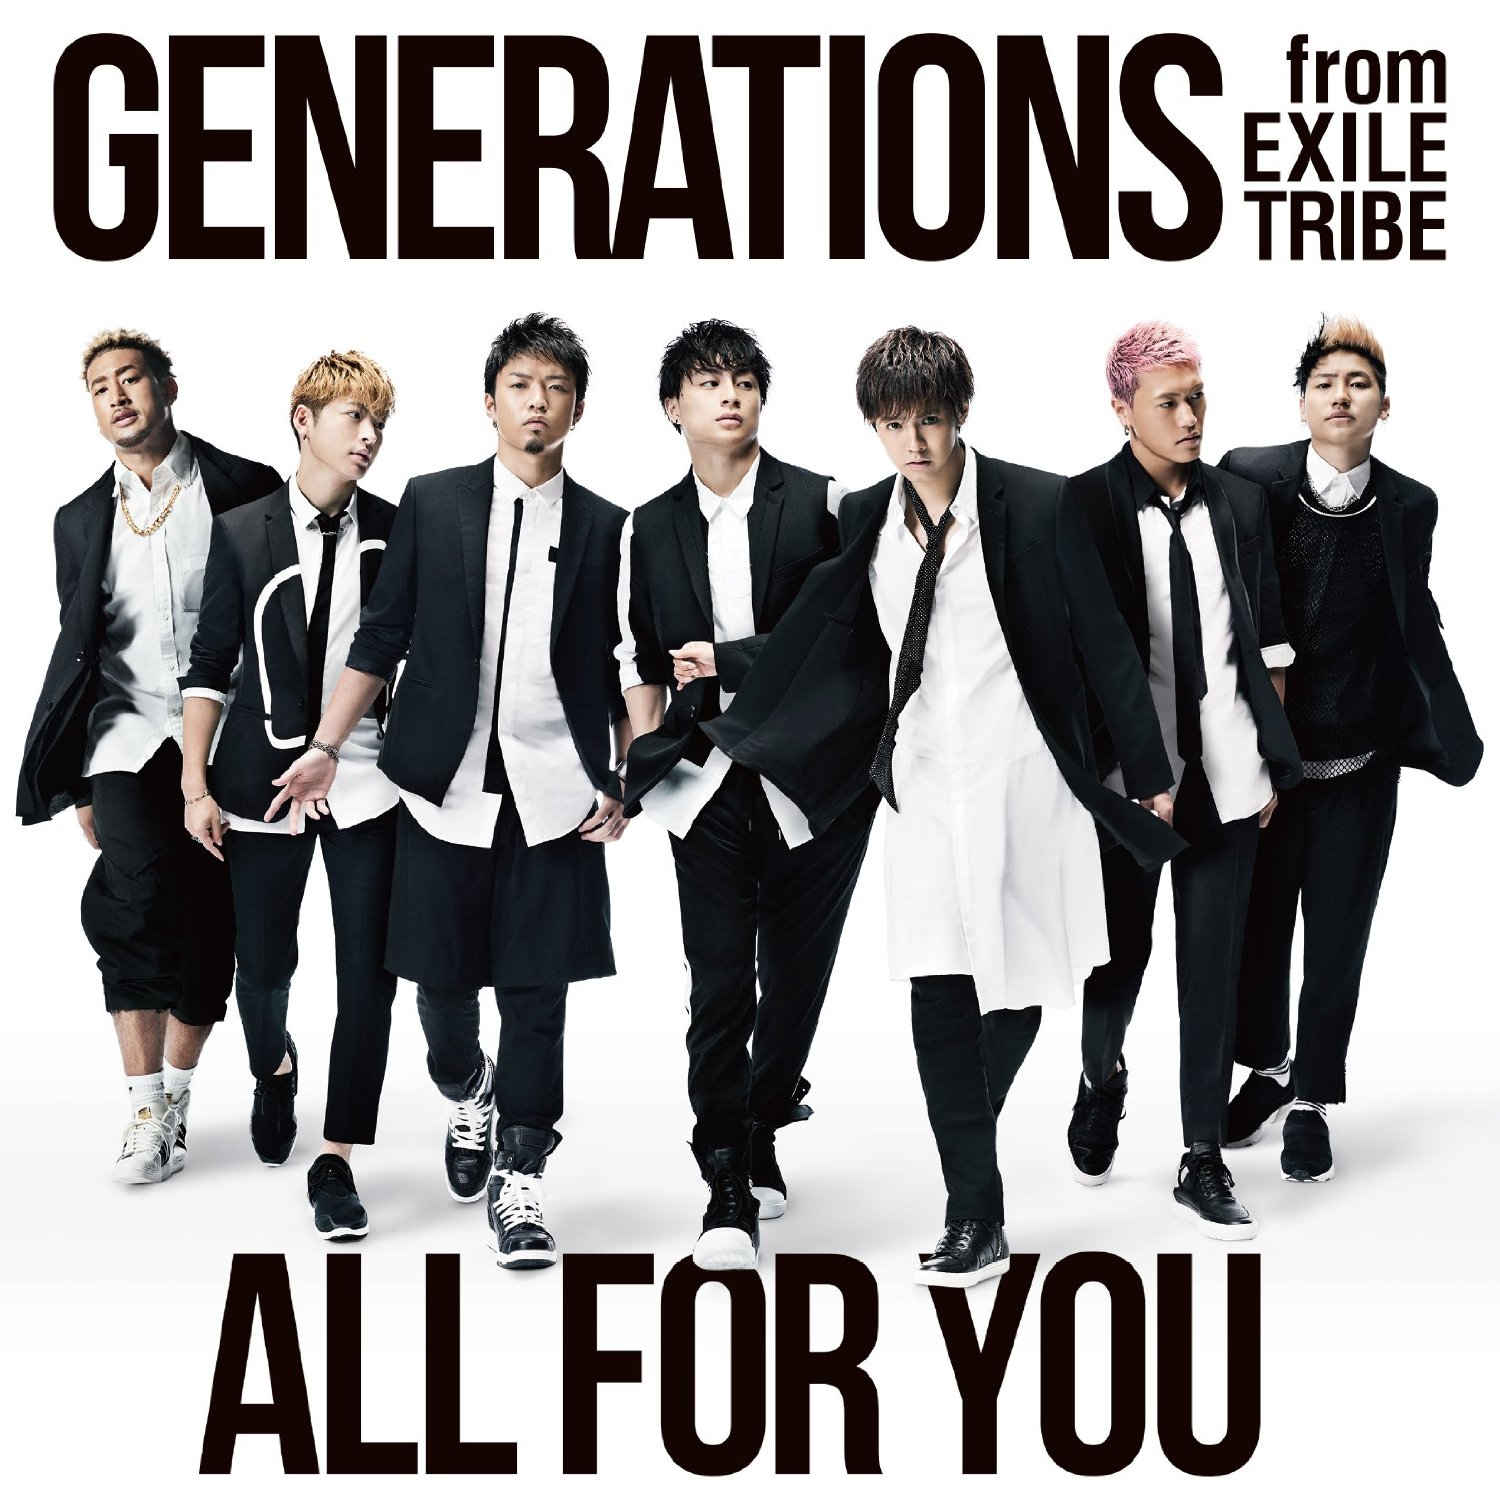 GENERATIONS from EXILE TRIBEの画像 p1_39